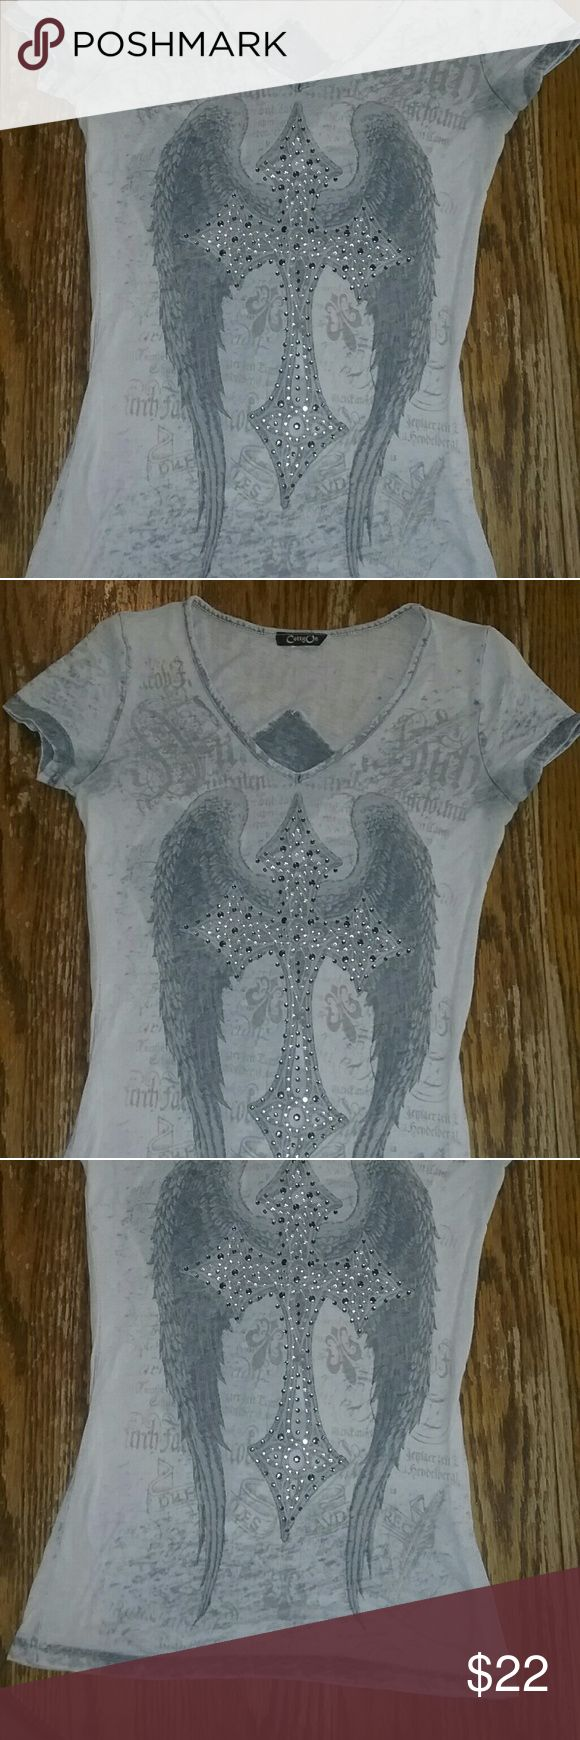 adb12e6a1c Absolutely beautiful cross t-shirt This is a rue 21 shirt it was purchased  there